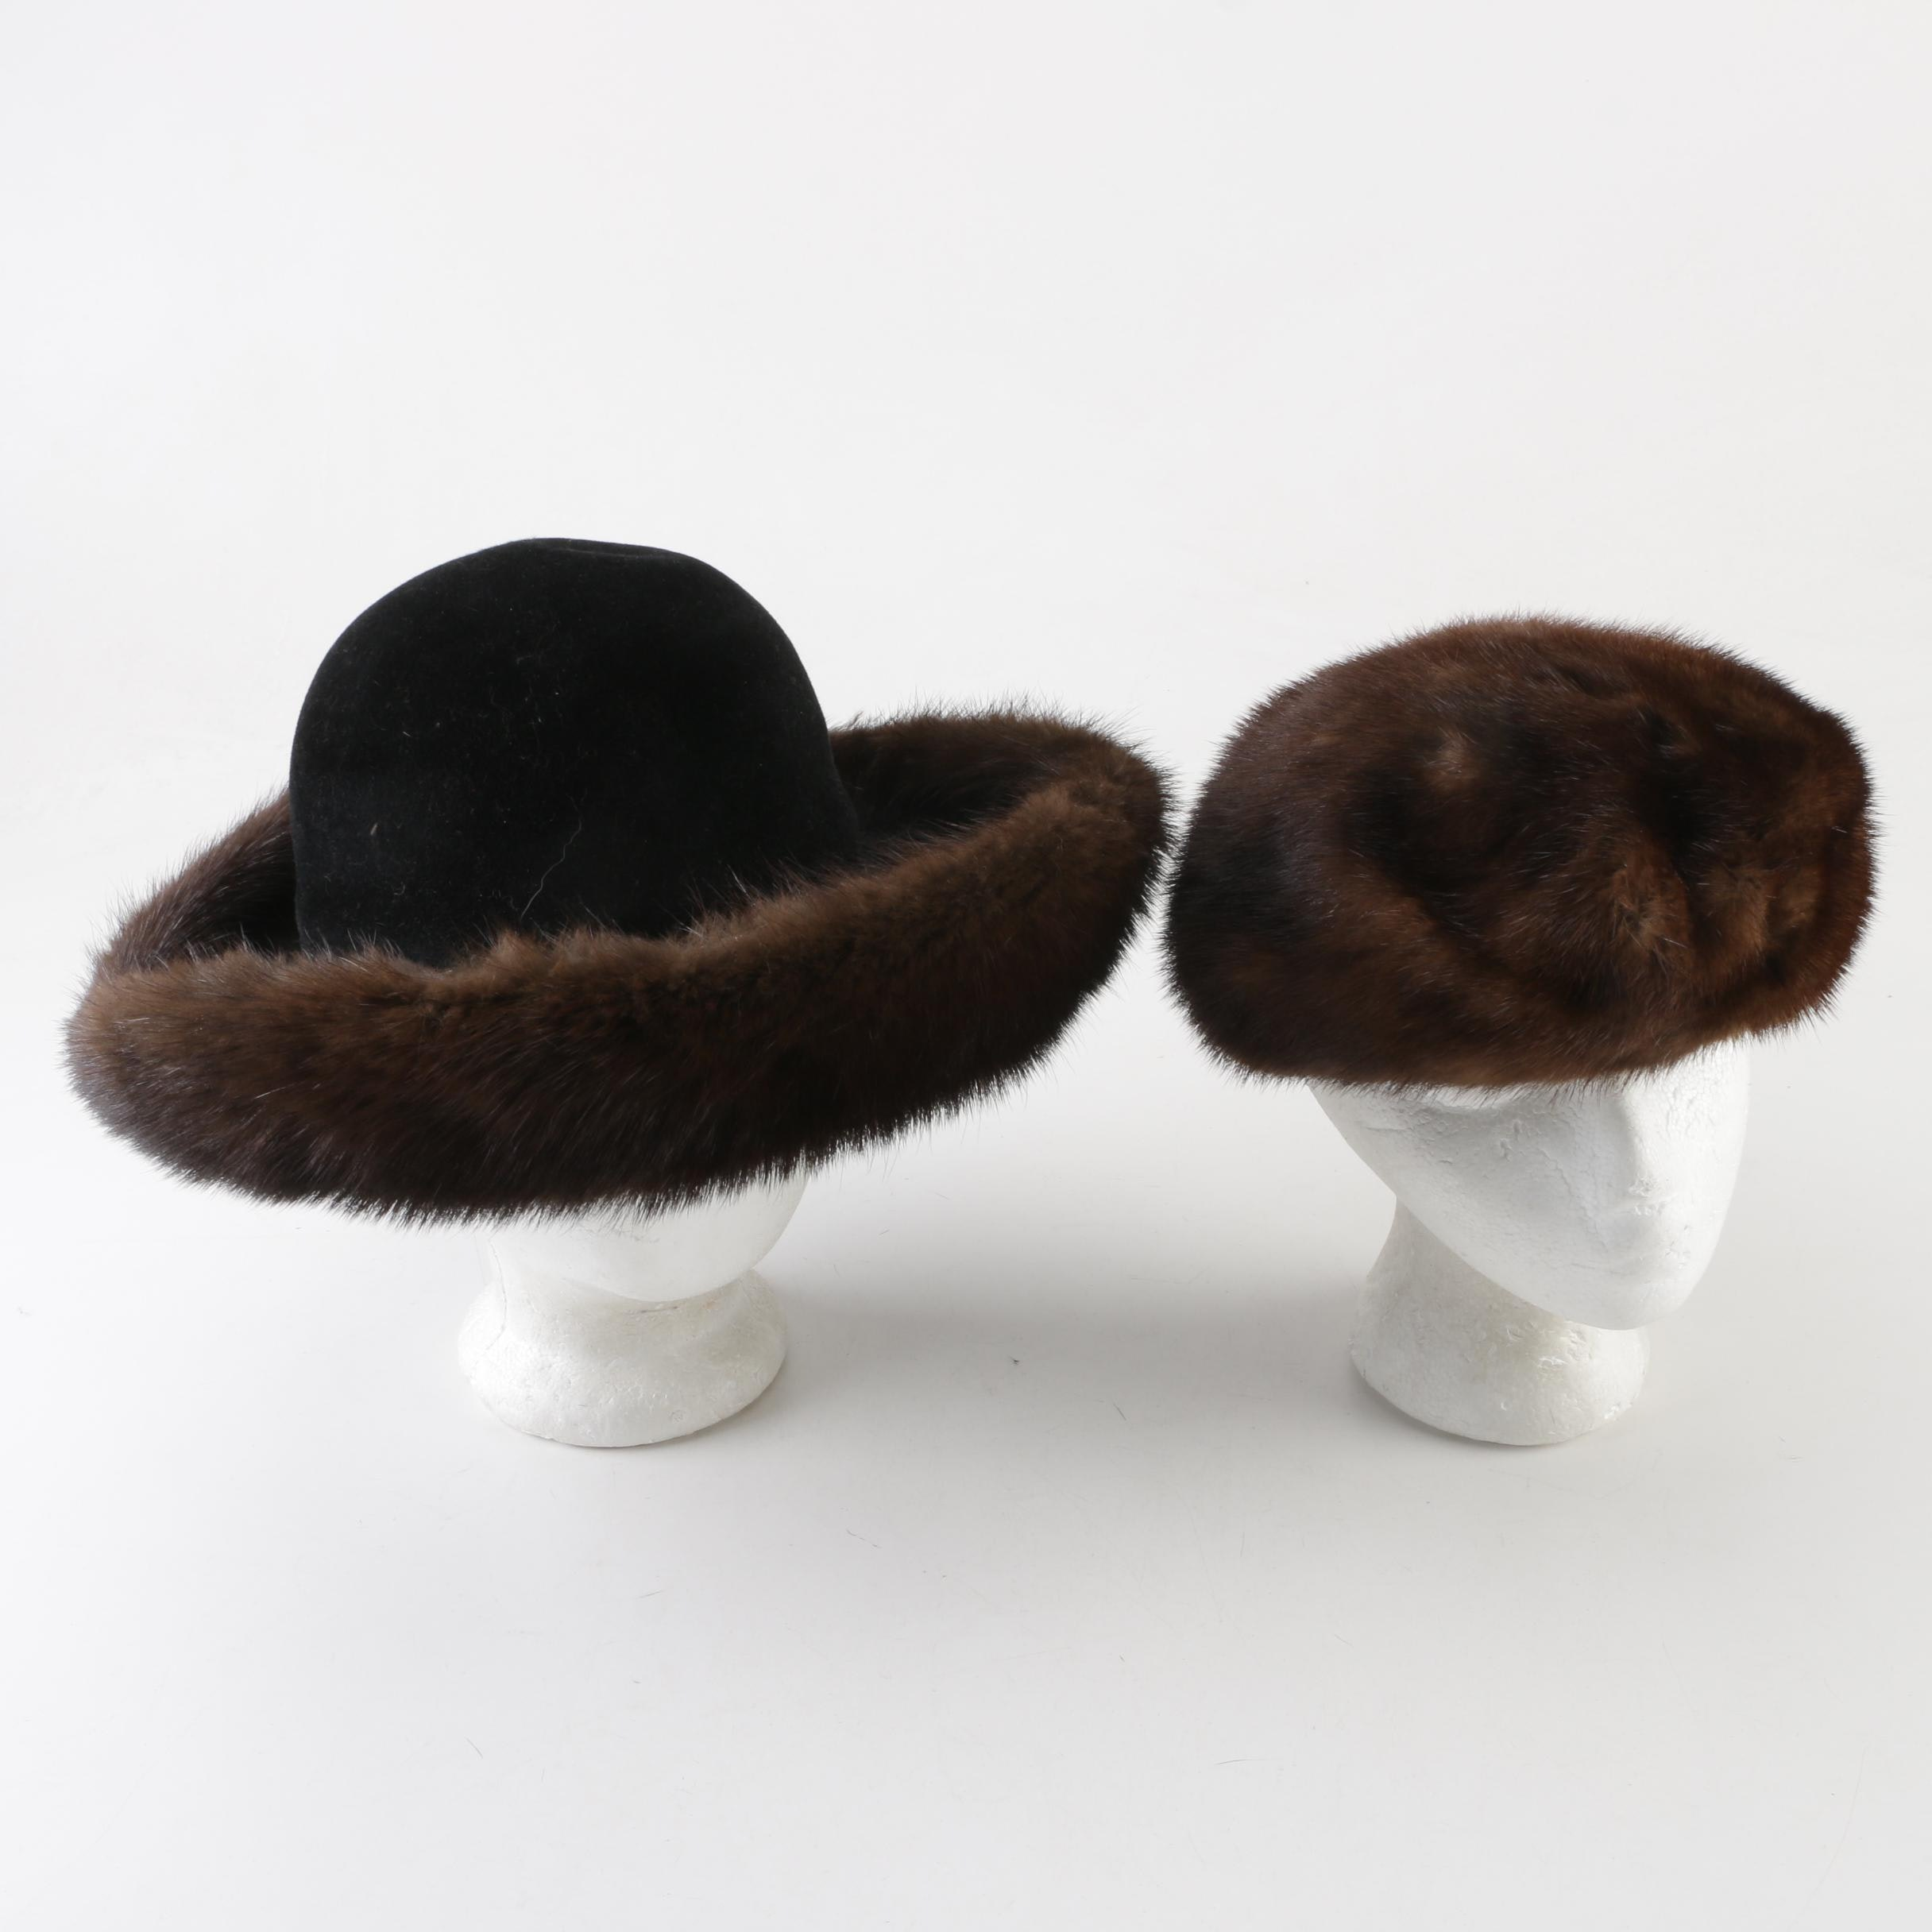 Joseph Magnin and Miss Alice for I. Magnin Mink Fur Hats